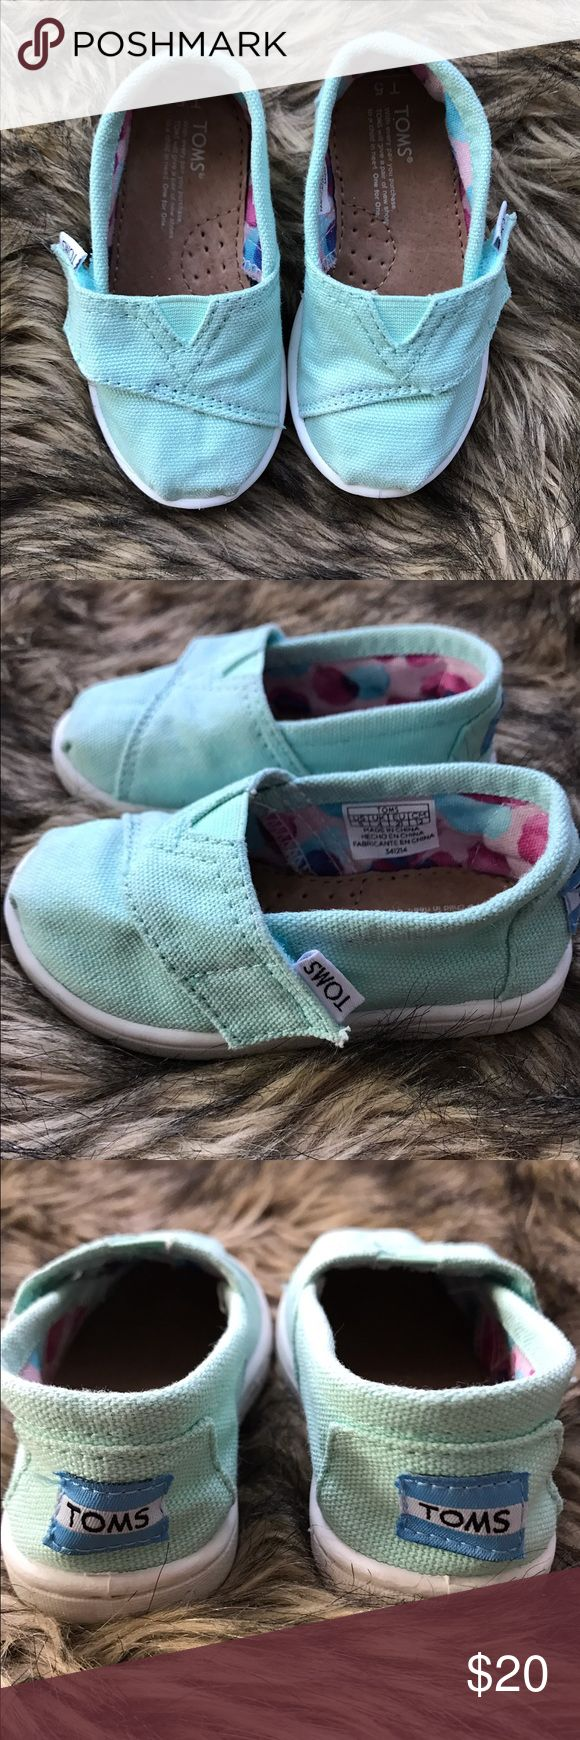 Toddler Toms Classic Slip On Casual Shoe - Mint Toddler Toms Classic Casual Slip On Shoe in Mint. Only worn a couple of times. TOMS Shoes Baby & Walker